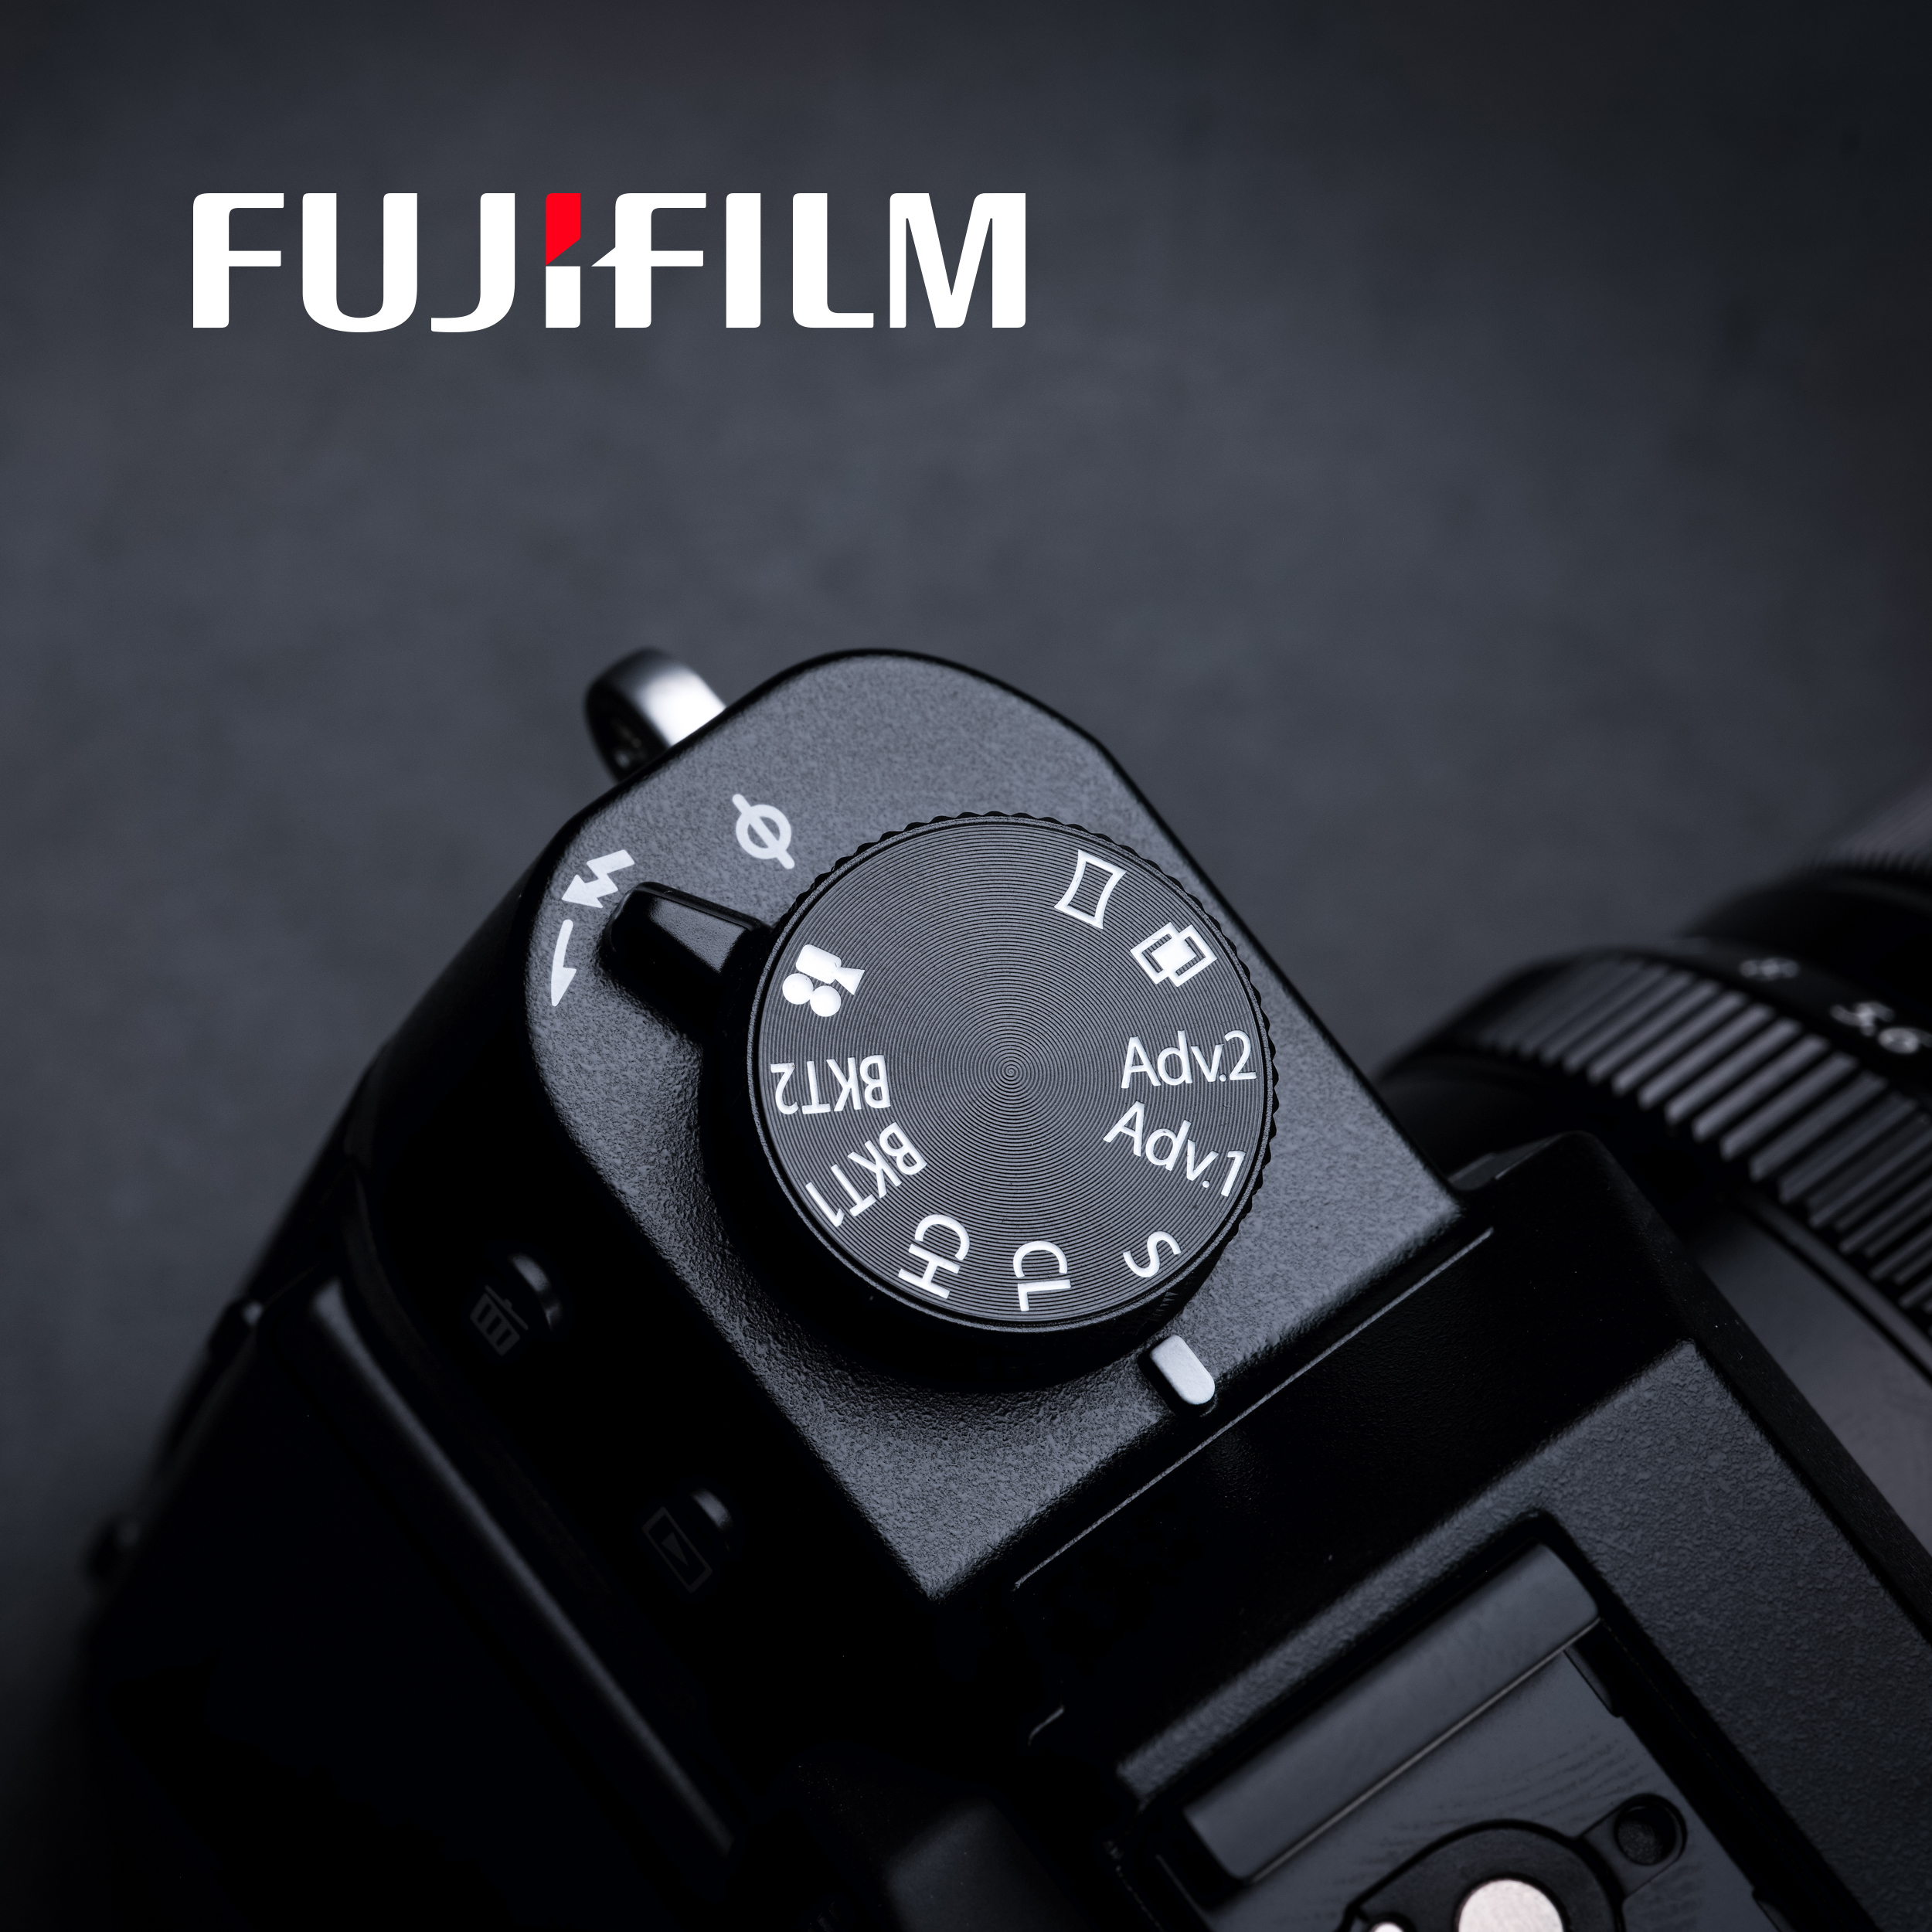 FujiFilm - Thanks to FujiFilm for sponsoring some of the lenses to our Fuji X-T2.Check out their gear at:http://www.fujifilm.com